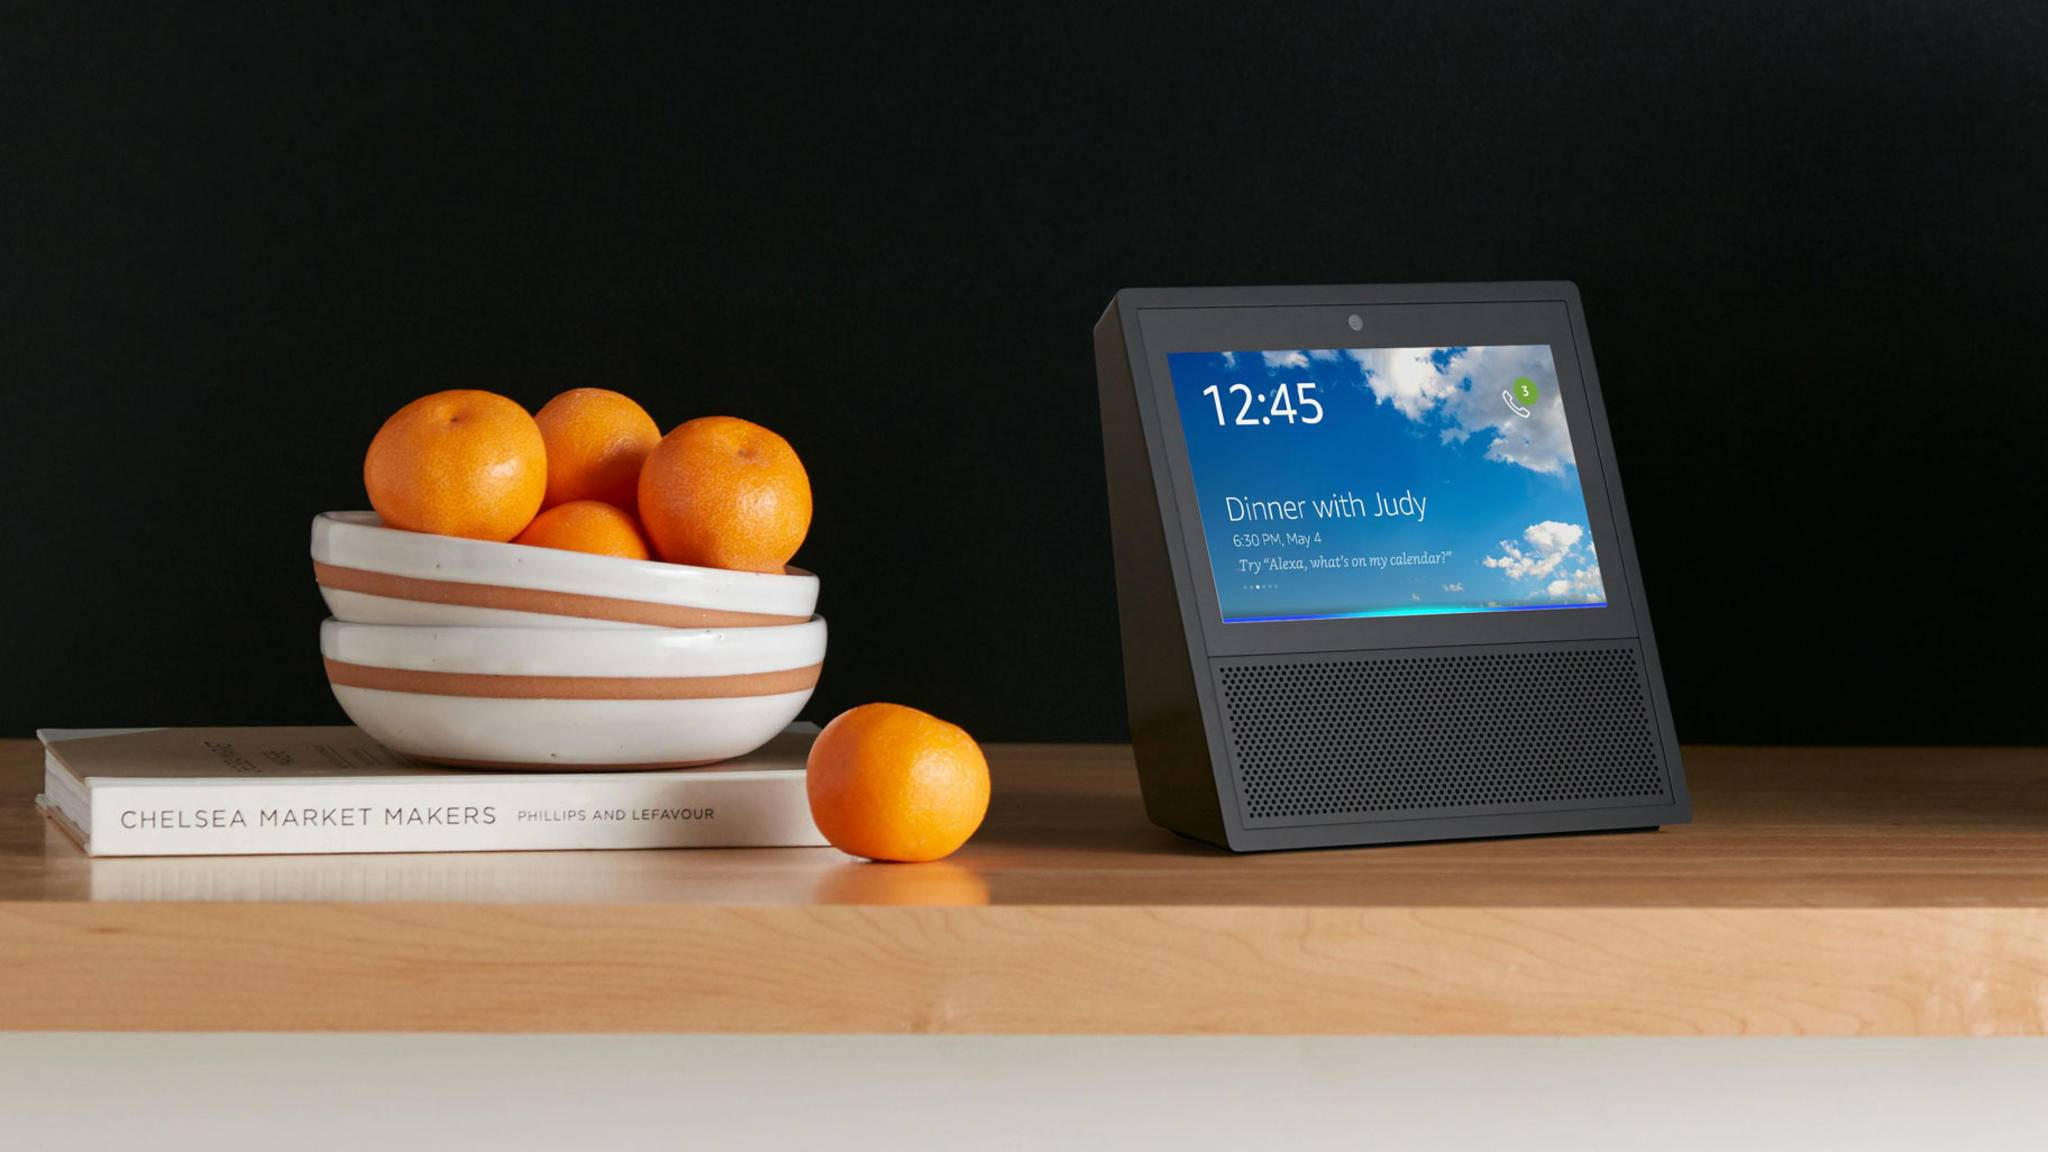 Der Amazon Echo Show hat ein 7-Zoll-Display.